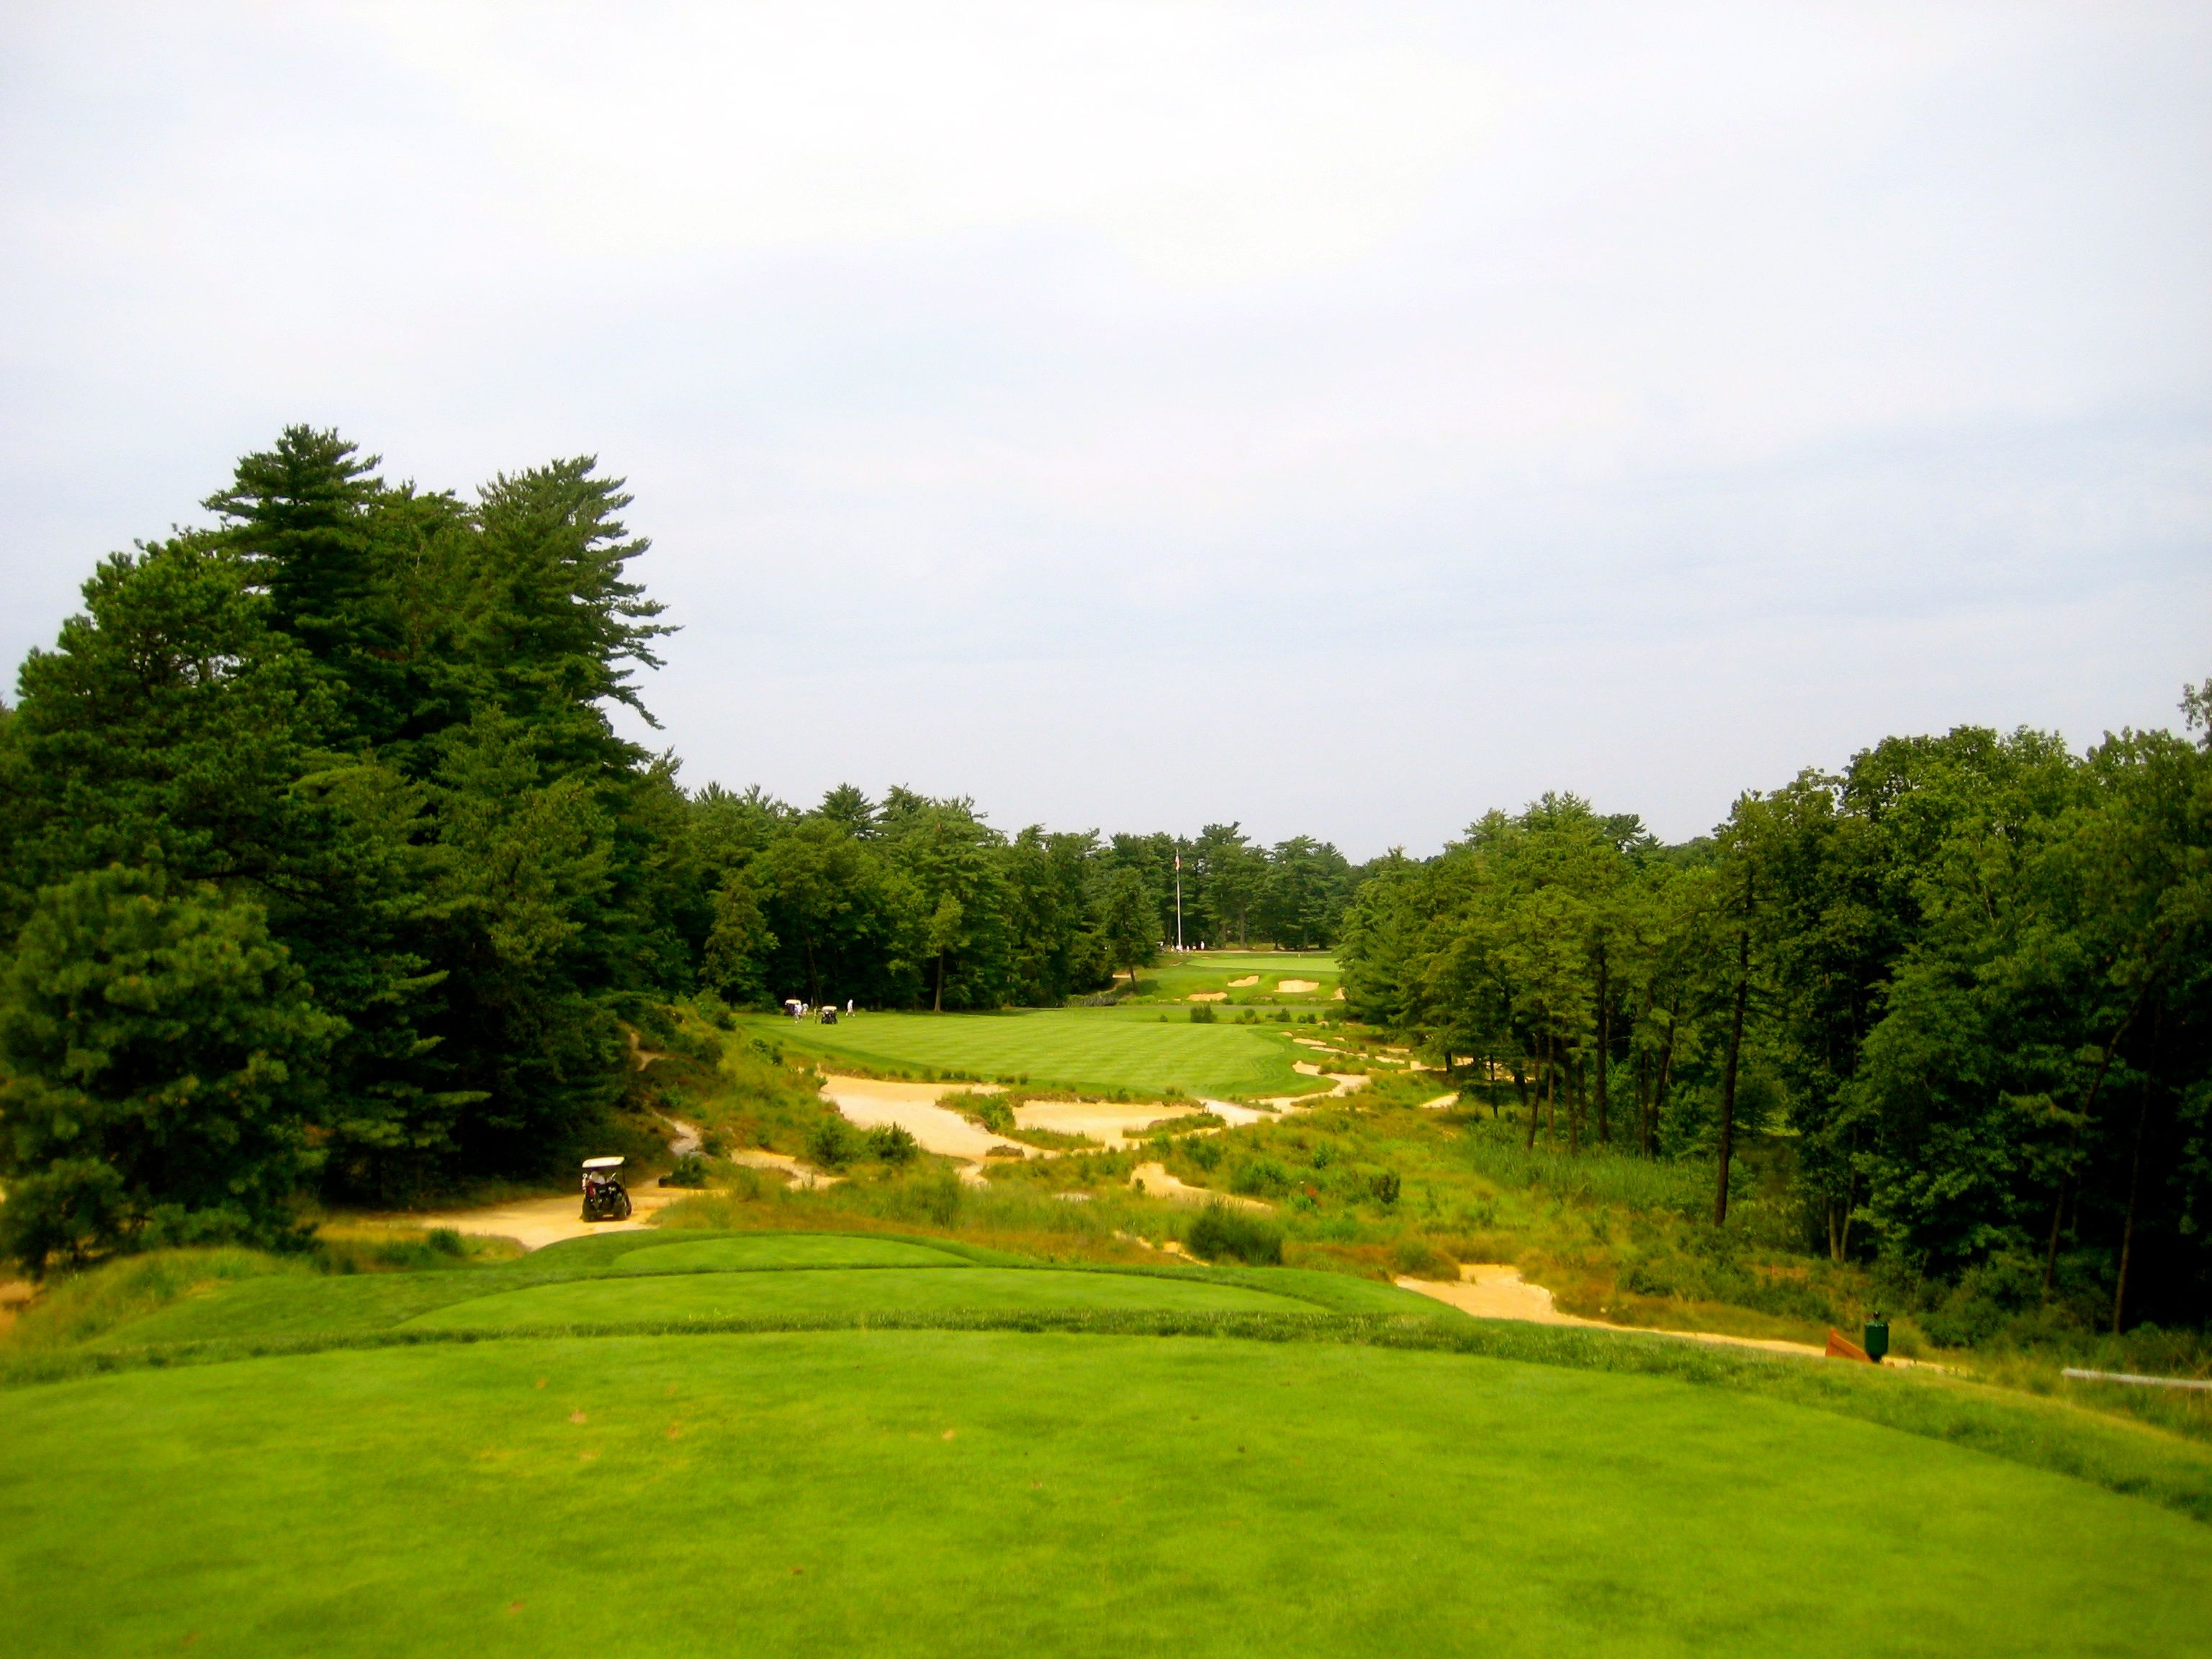 18th Hole at Pine Valley Golf Club, Clementon, NJ. Brings ...